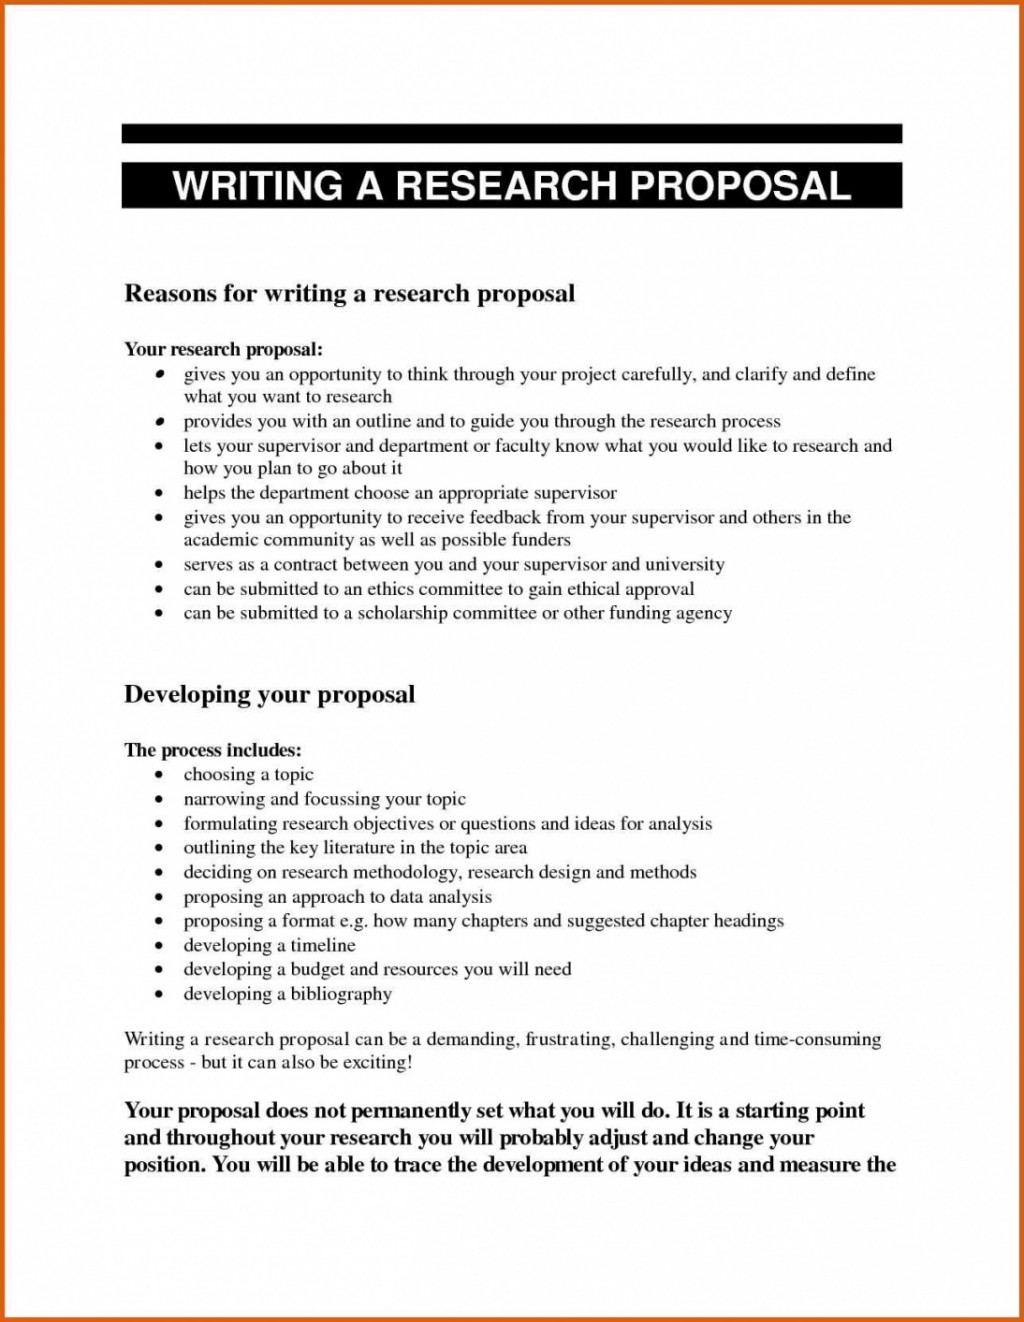 011 Gender Equality Essay Example Research Proposal Paper Topic Top Ideas Argumentative Pdf In Simple Words Large